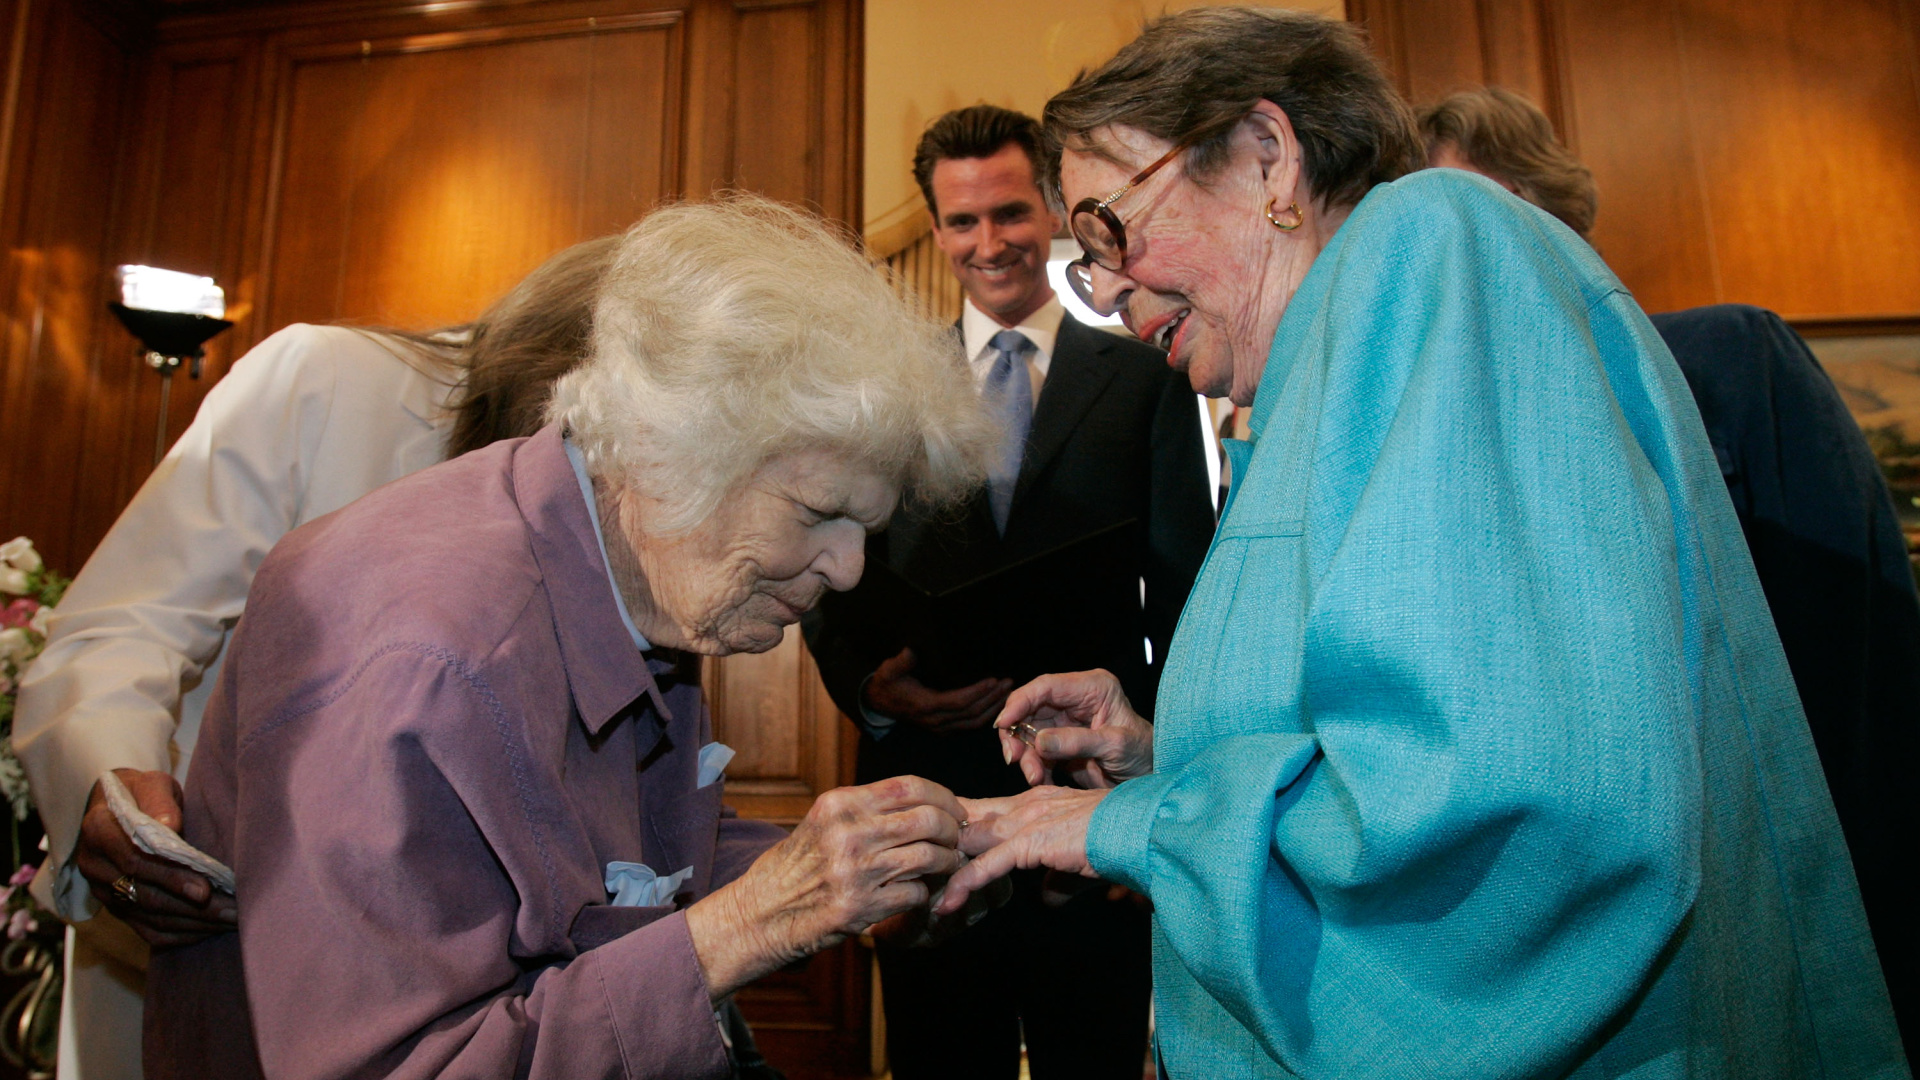 Del Martin (left) and Phyllis Lyon (right) exchange rings as they are married by San Francisco mayor Gavin Newsom in a private ceremony at San Francisco City Hall June 16, 2008, in San Francisco. (Marcio Jose Sanchez-Pool/Getty Images)